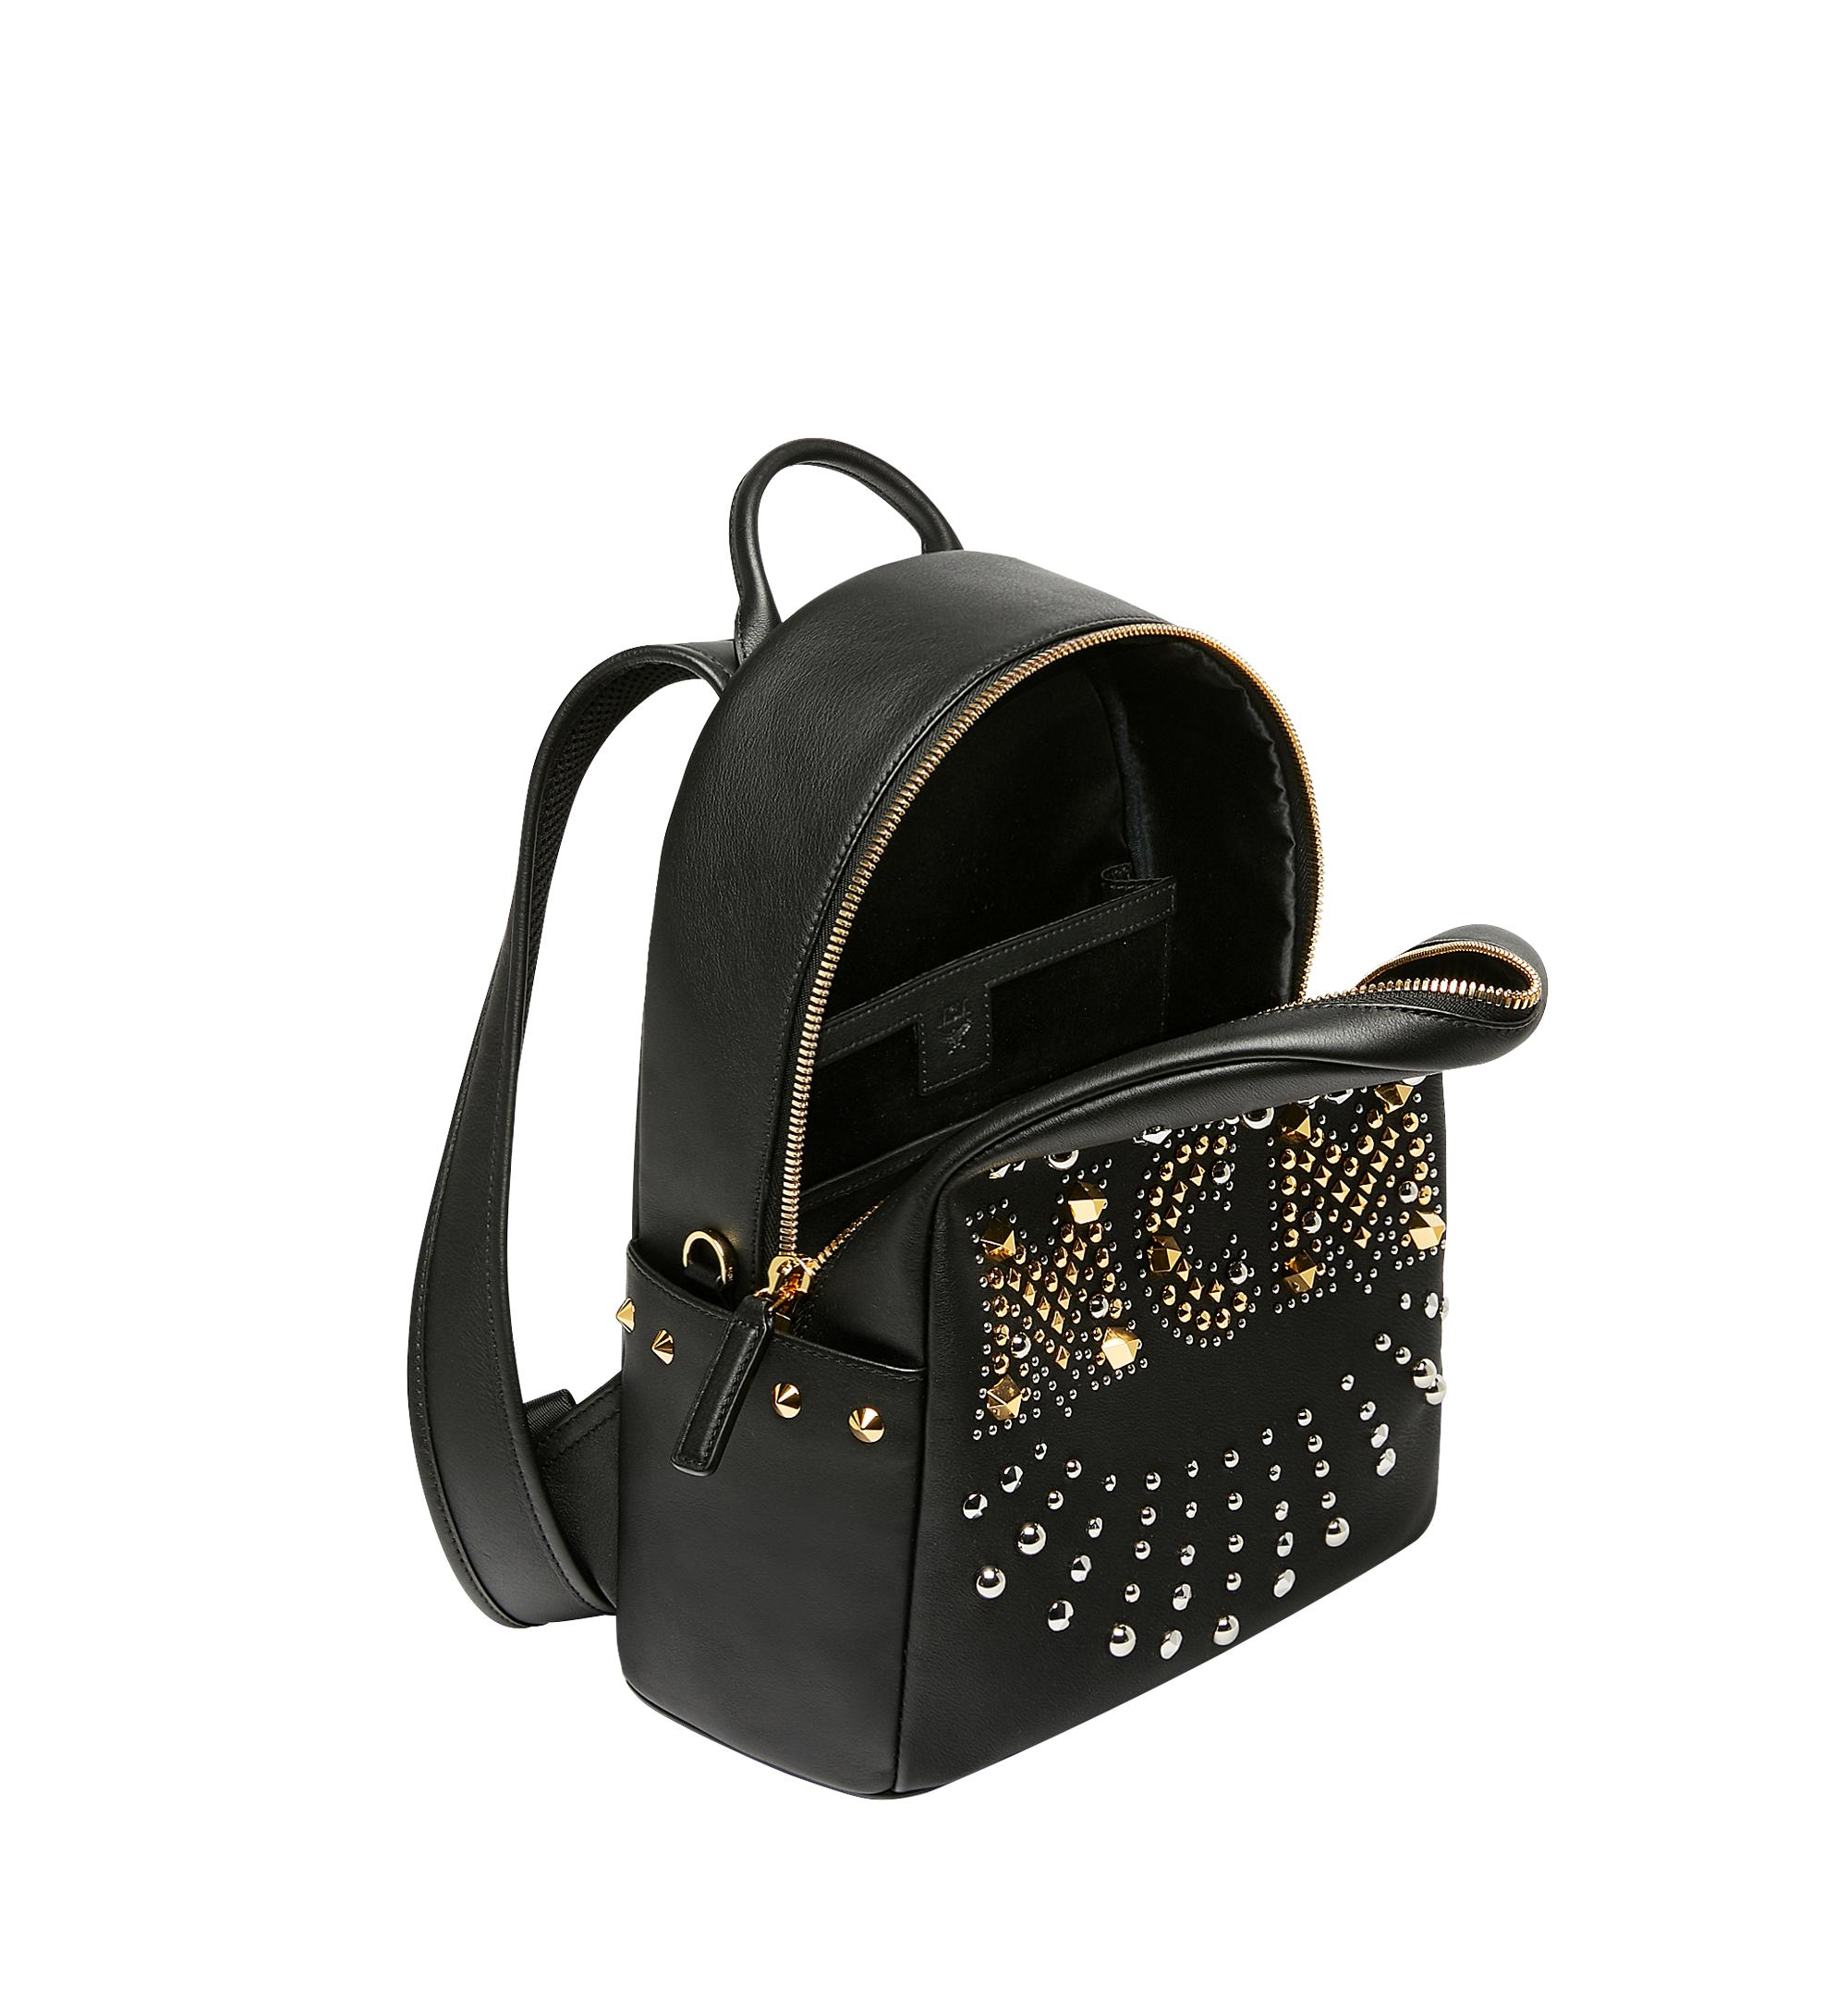 ... Stark Backpack In Radial Stud Leather - Lyst. View fullscreen 715258bb6b